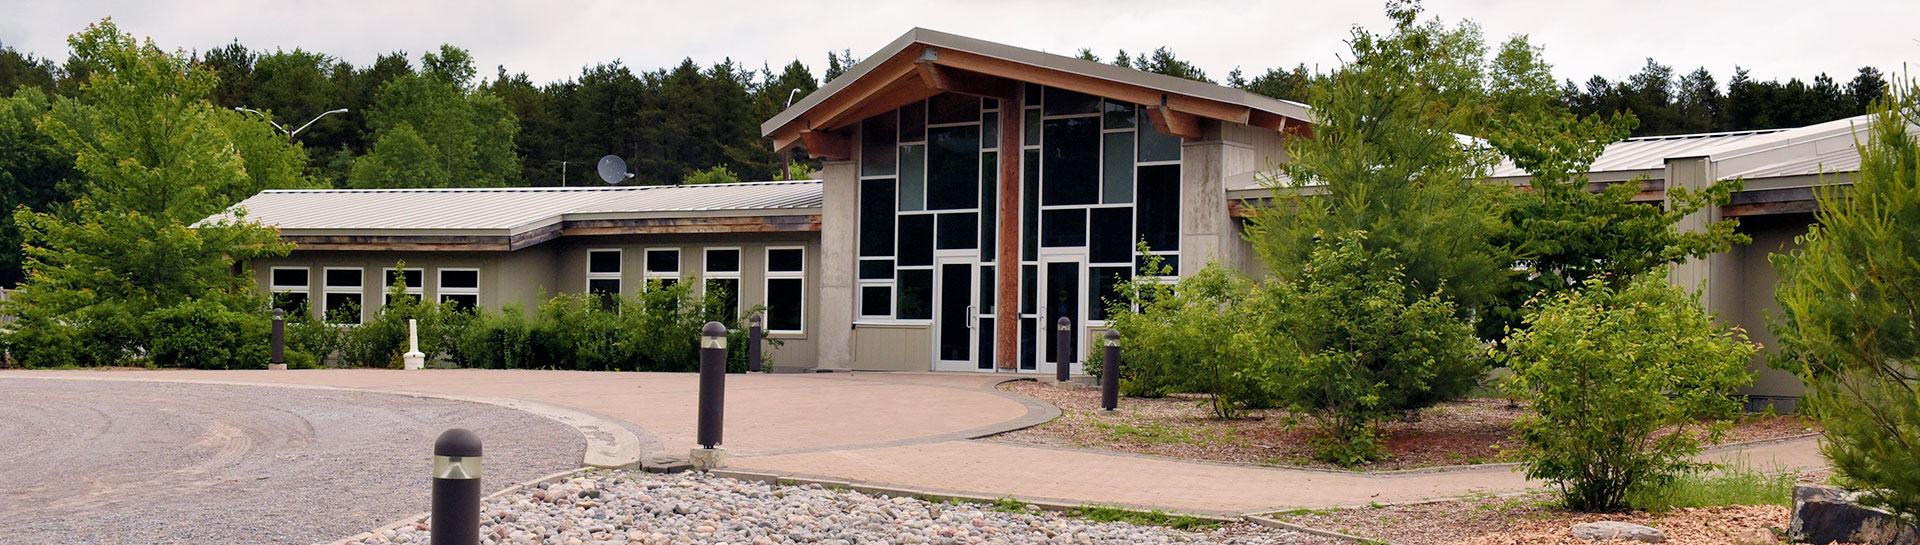 Exterior of Ganaraska Forest Centre building in summer